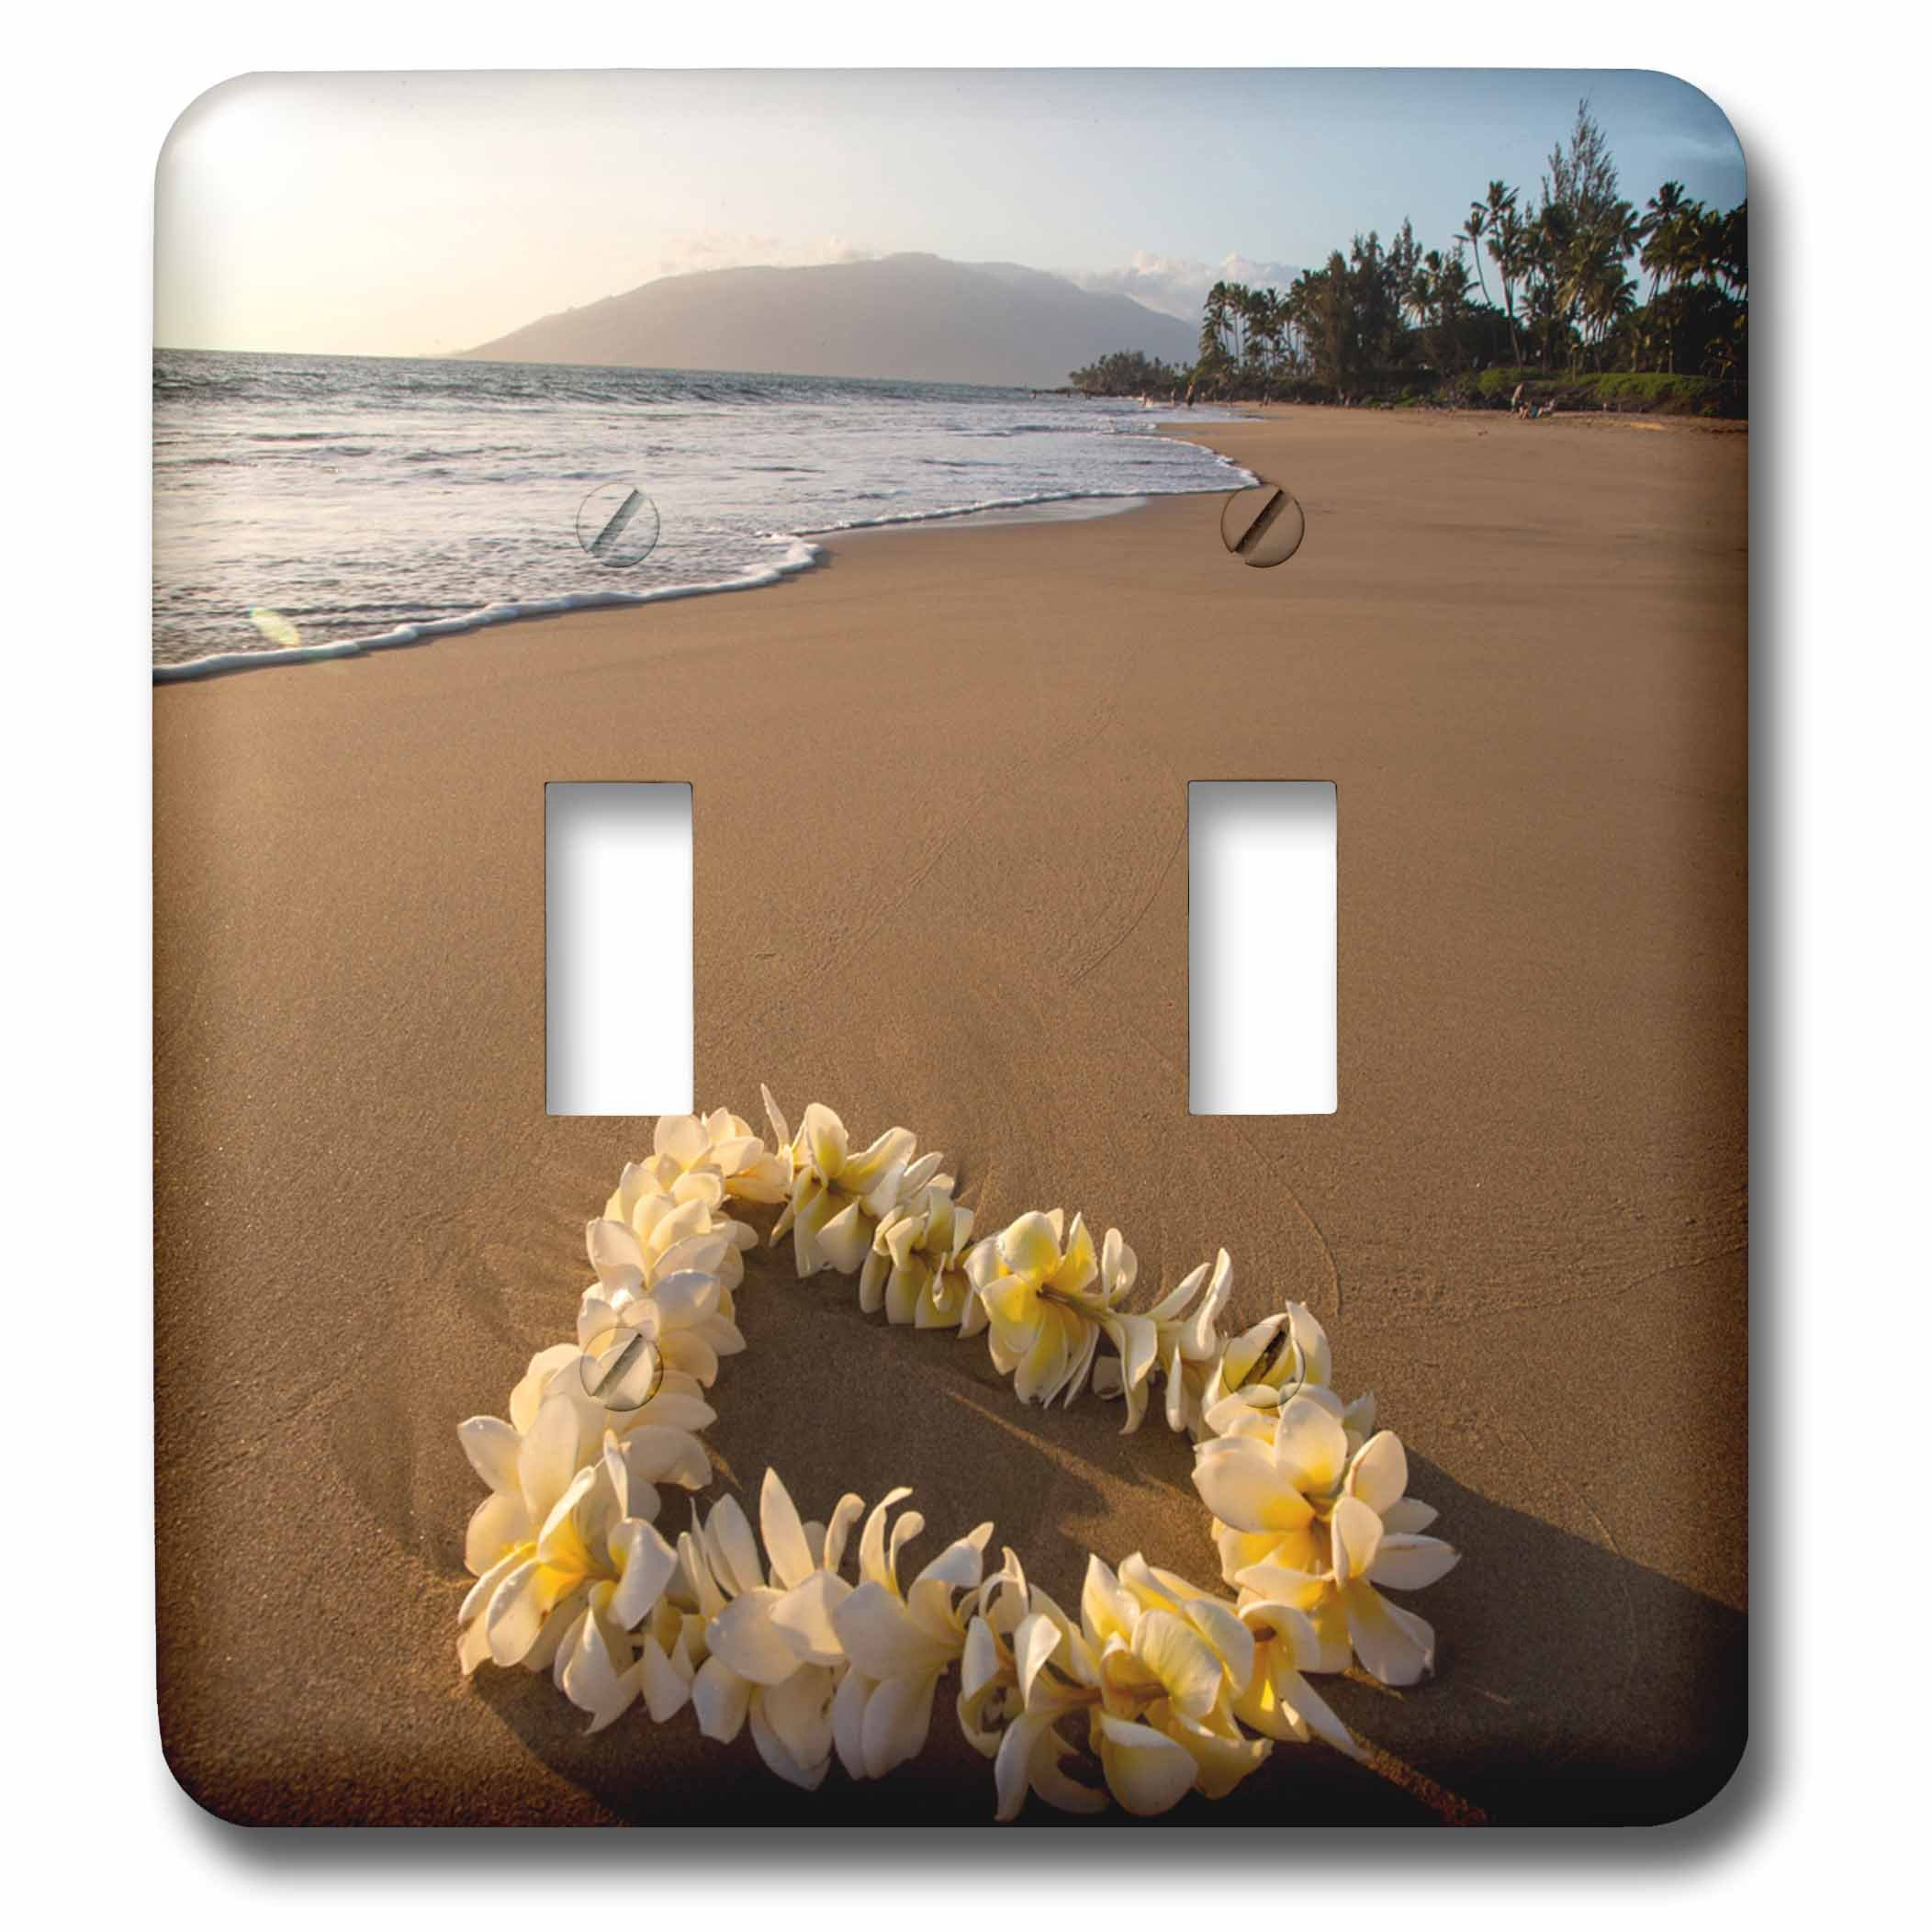 3dRose LSP_259255_2 USA, Hawaii, Maui, Lie on Kihei Beach with Reflections in Sand Toggle Switch, Mixed